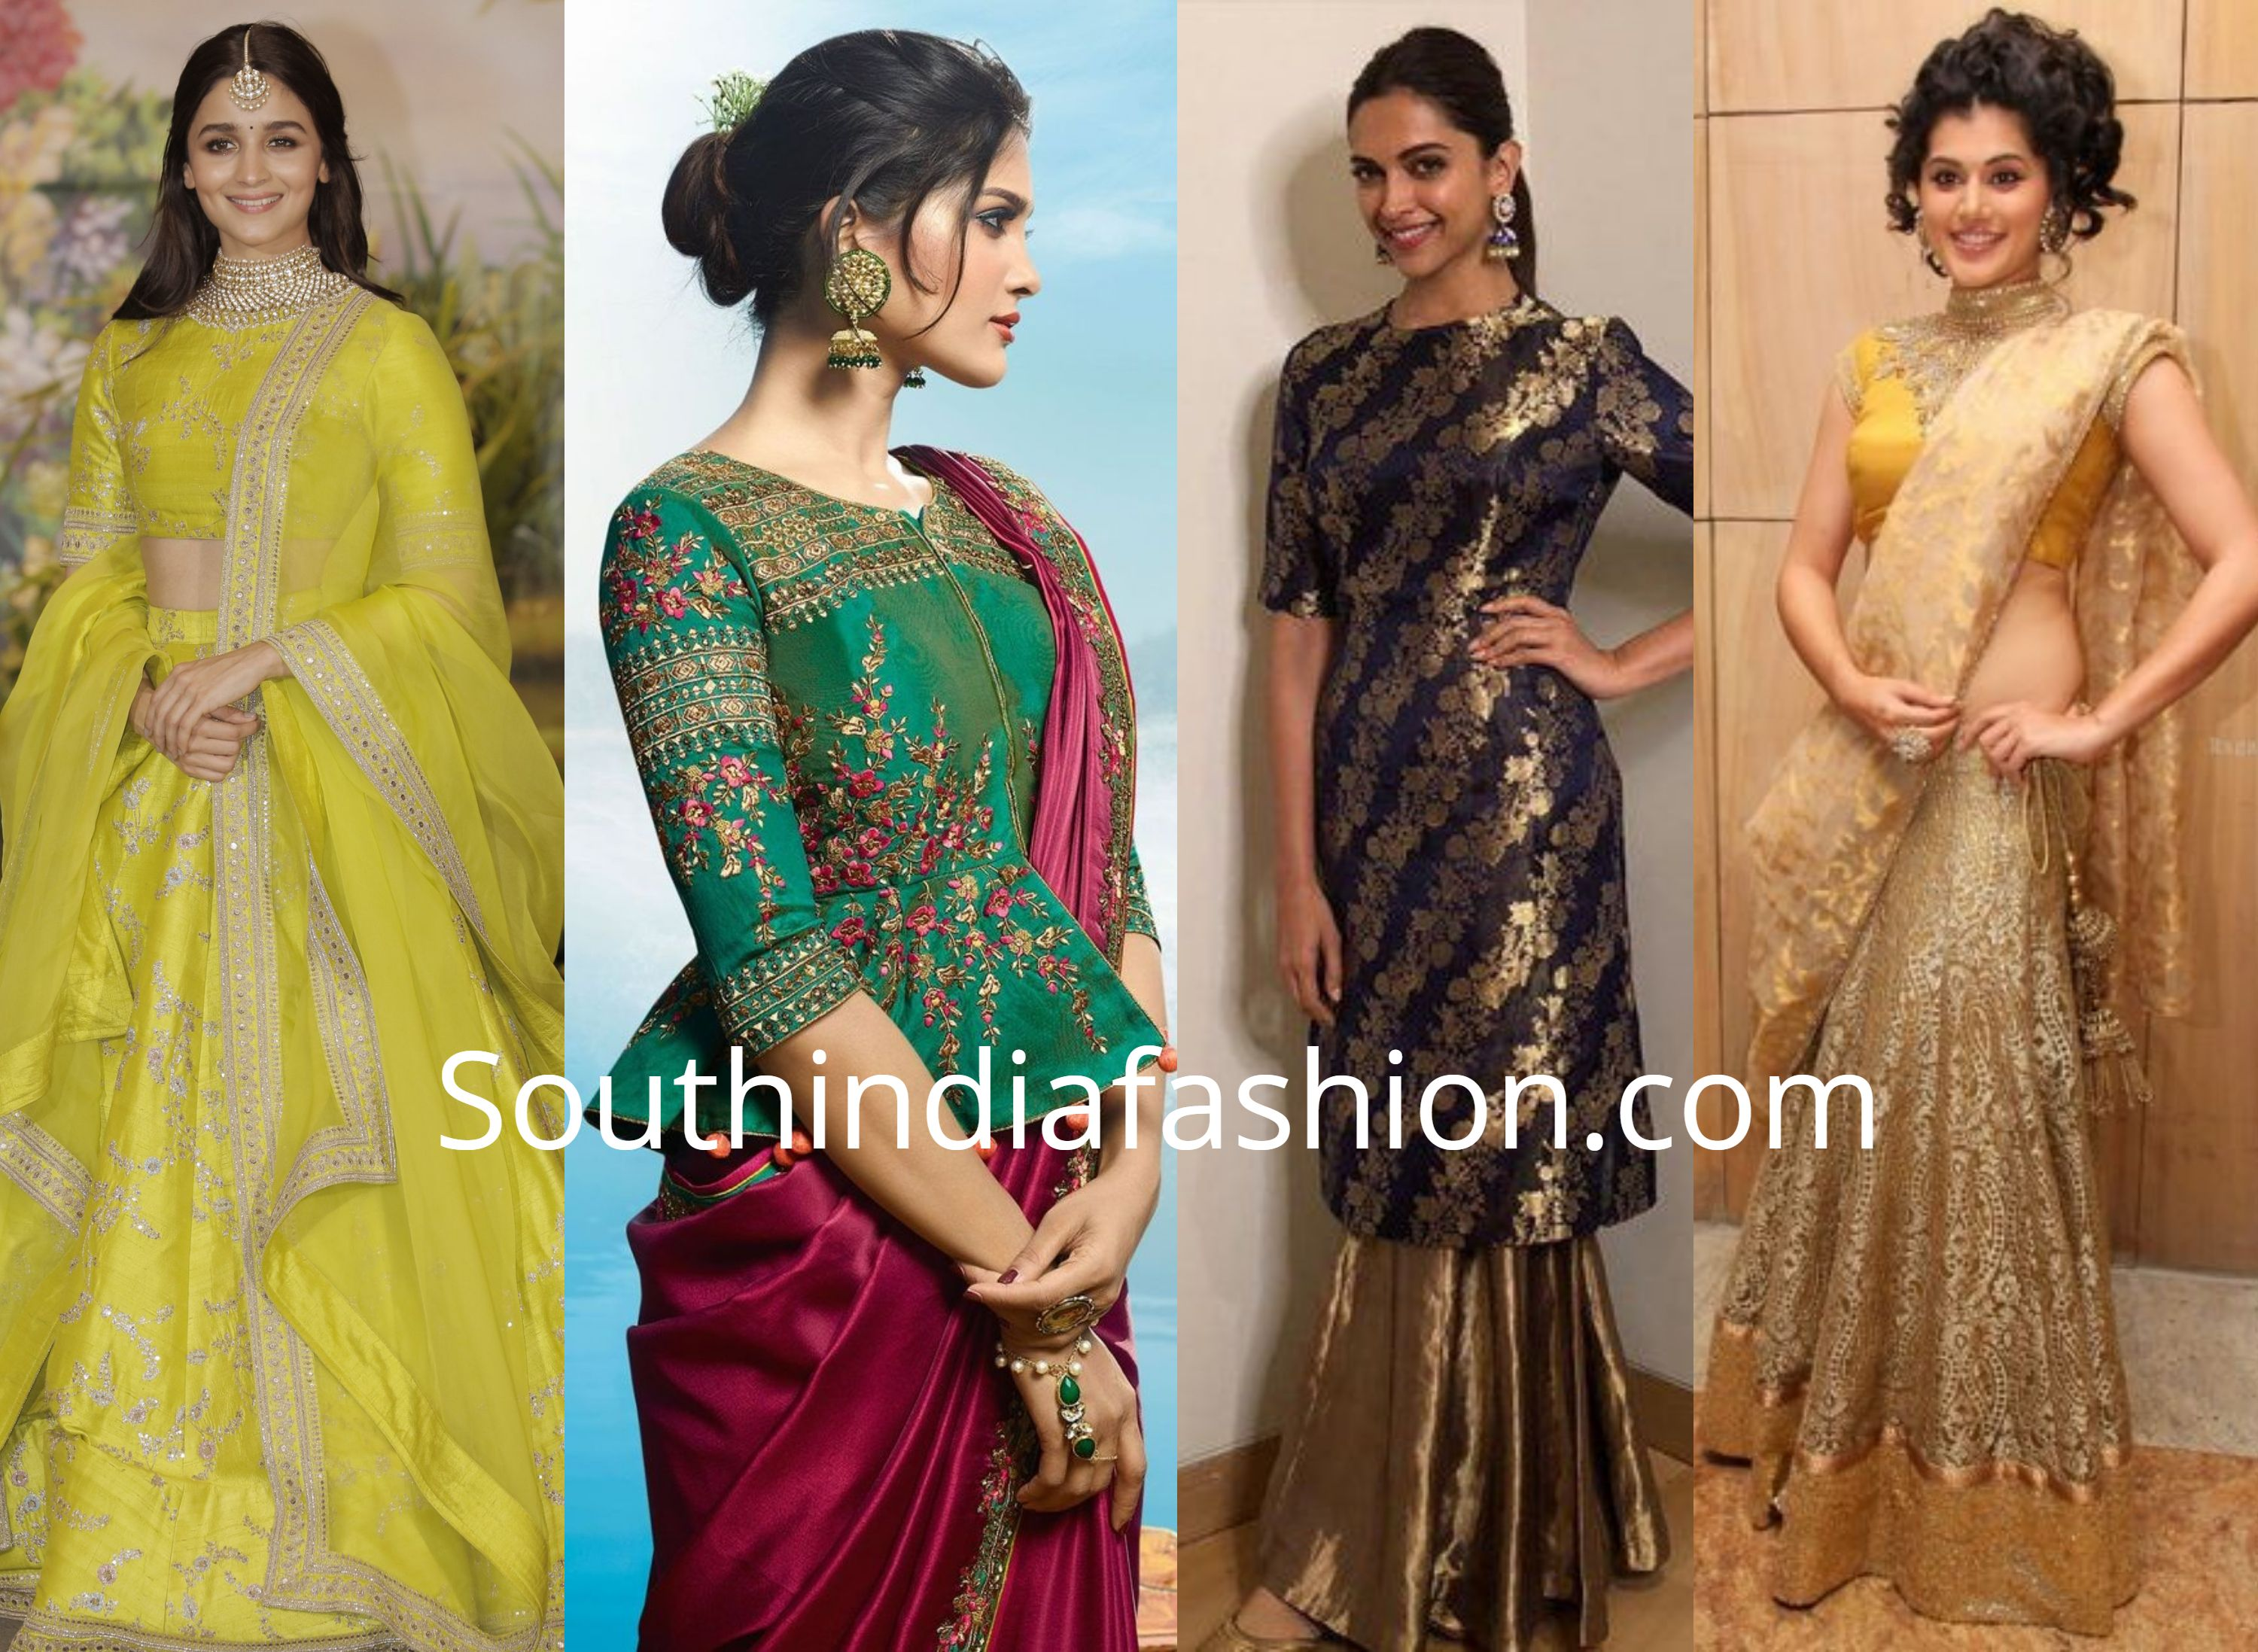 Sister Of The Bride Trendy Indian Wedding Outfit Ideas For Bride S Sister Indian Wedding Outfits Indian Wedding Dress Brides Indian Wedding Outfit